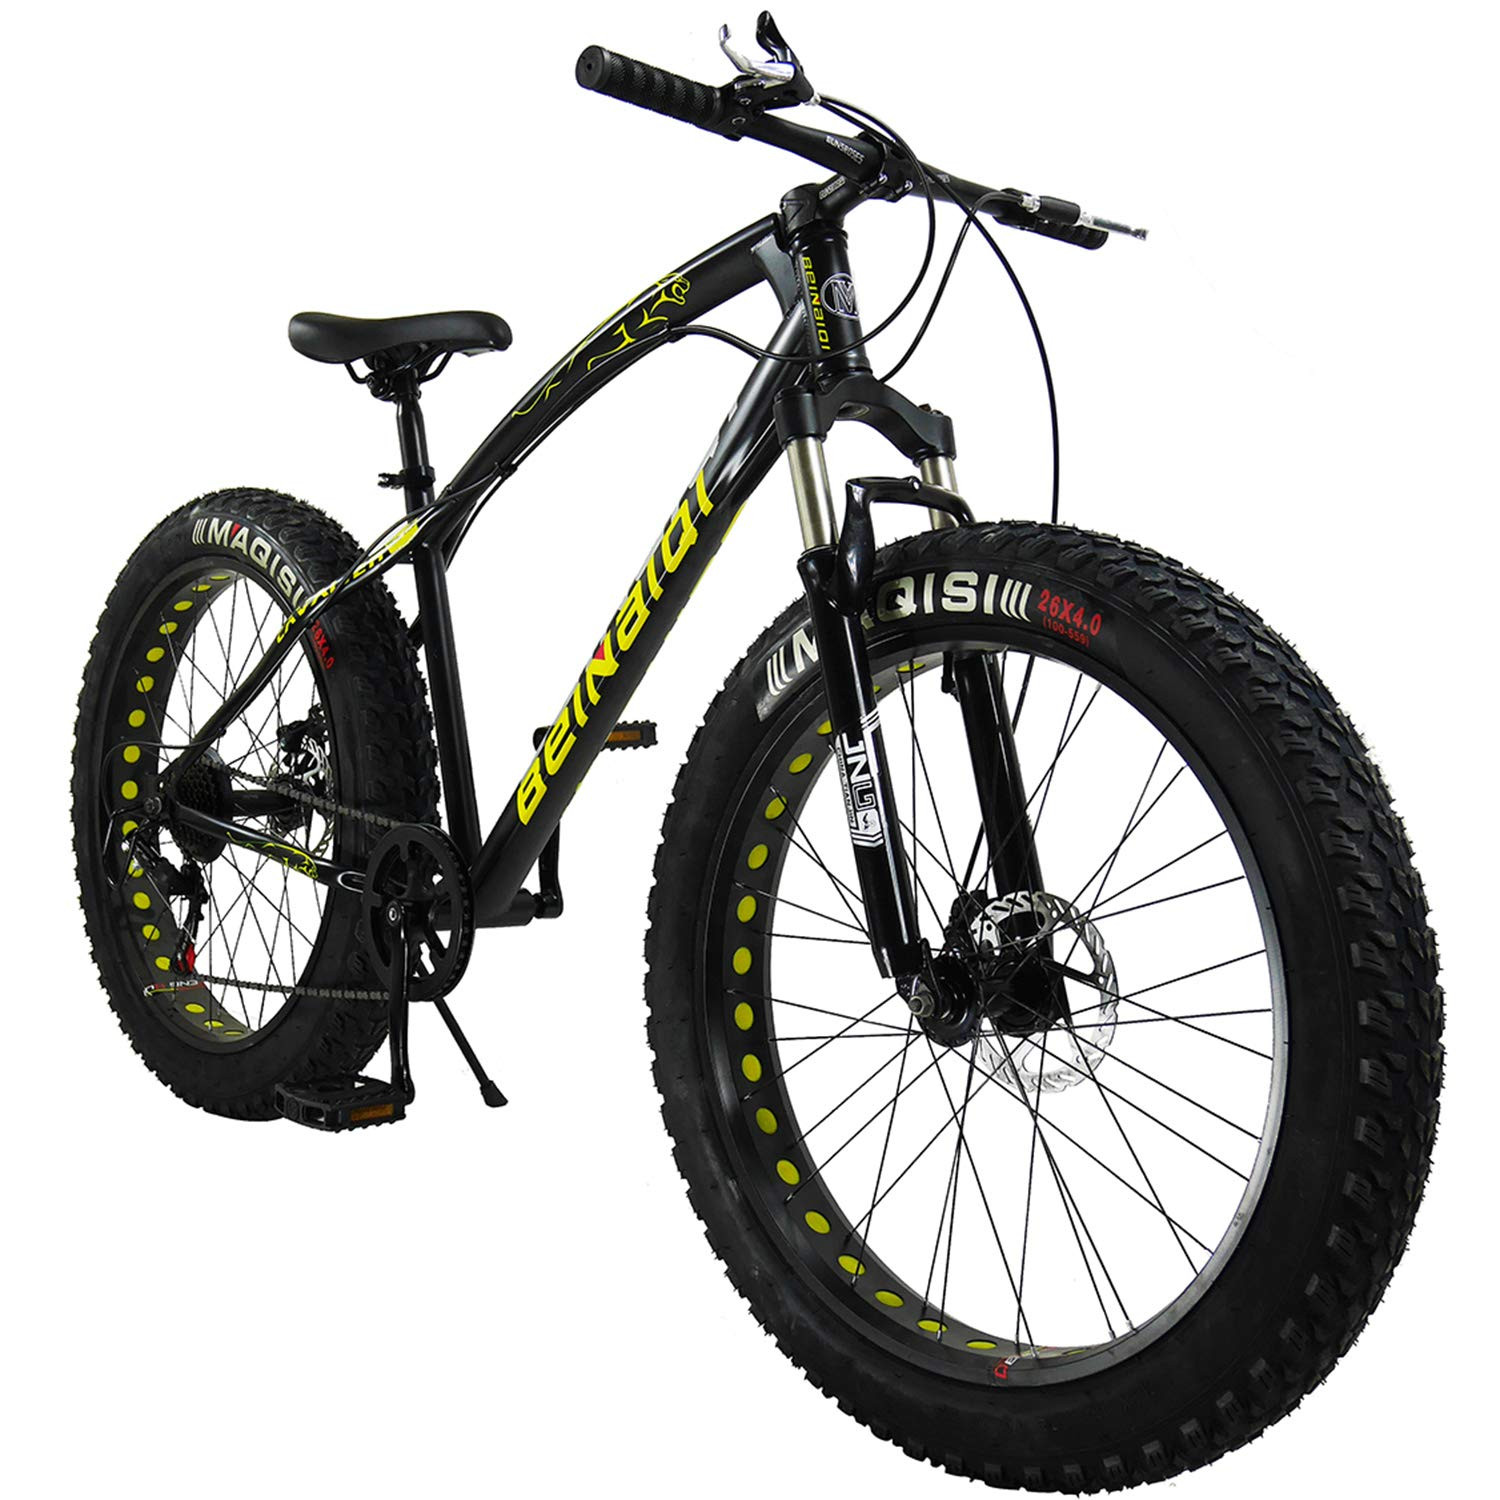 SAIGULA Fat Tire Bicycle Fat Mountain Bike